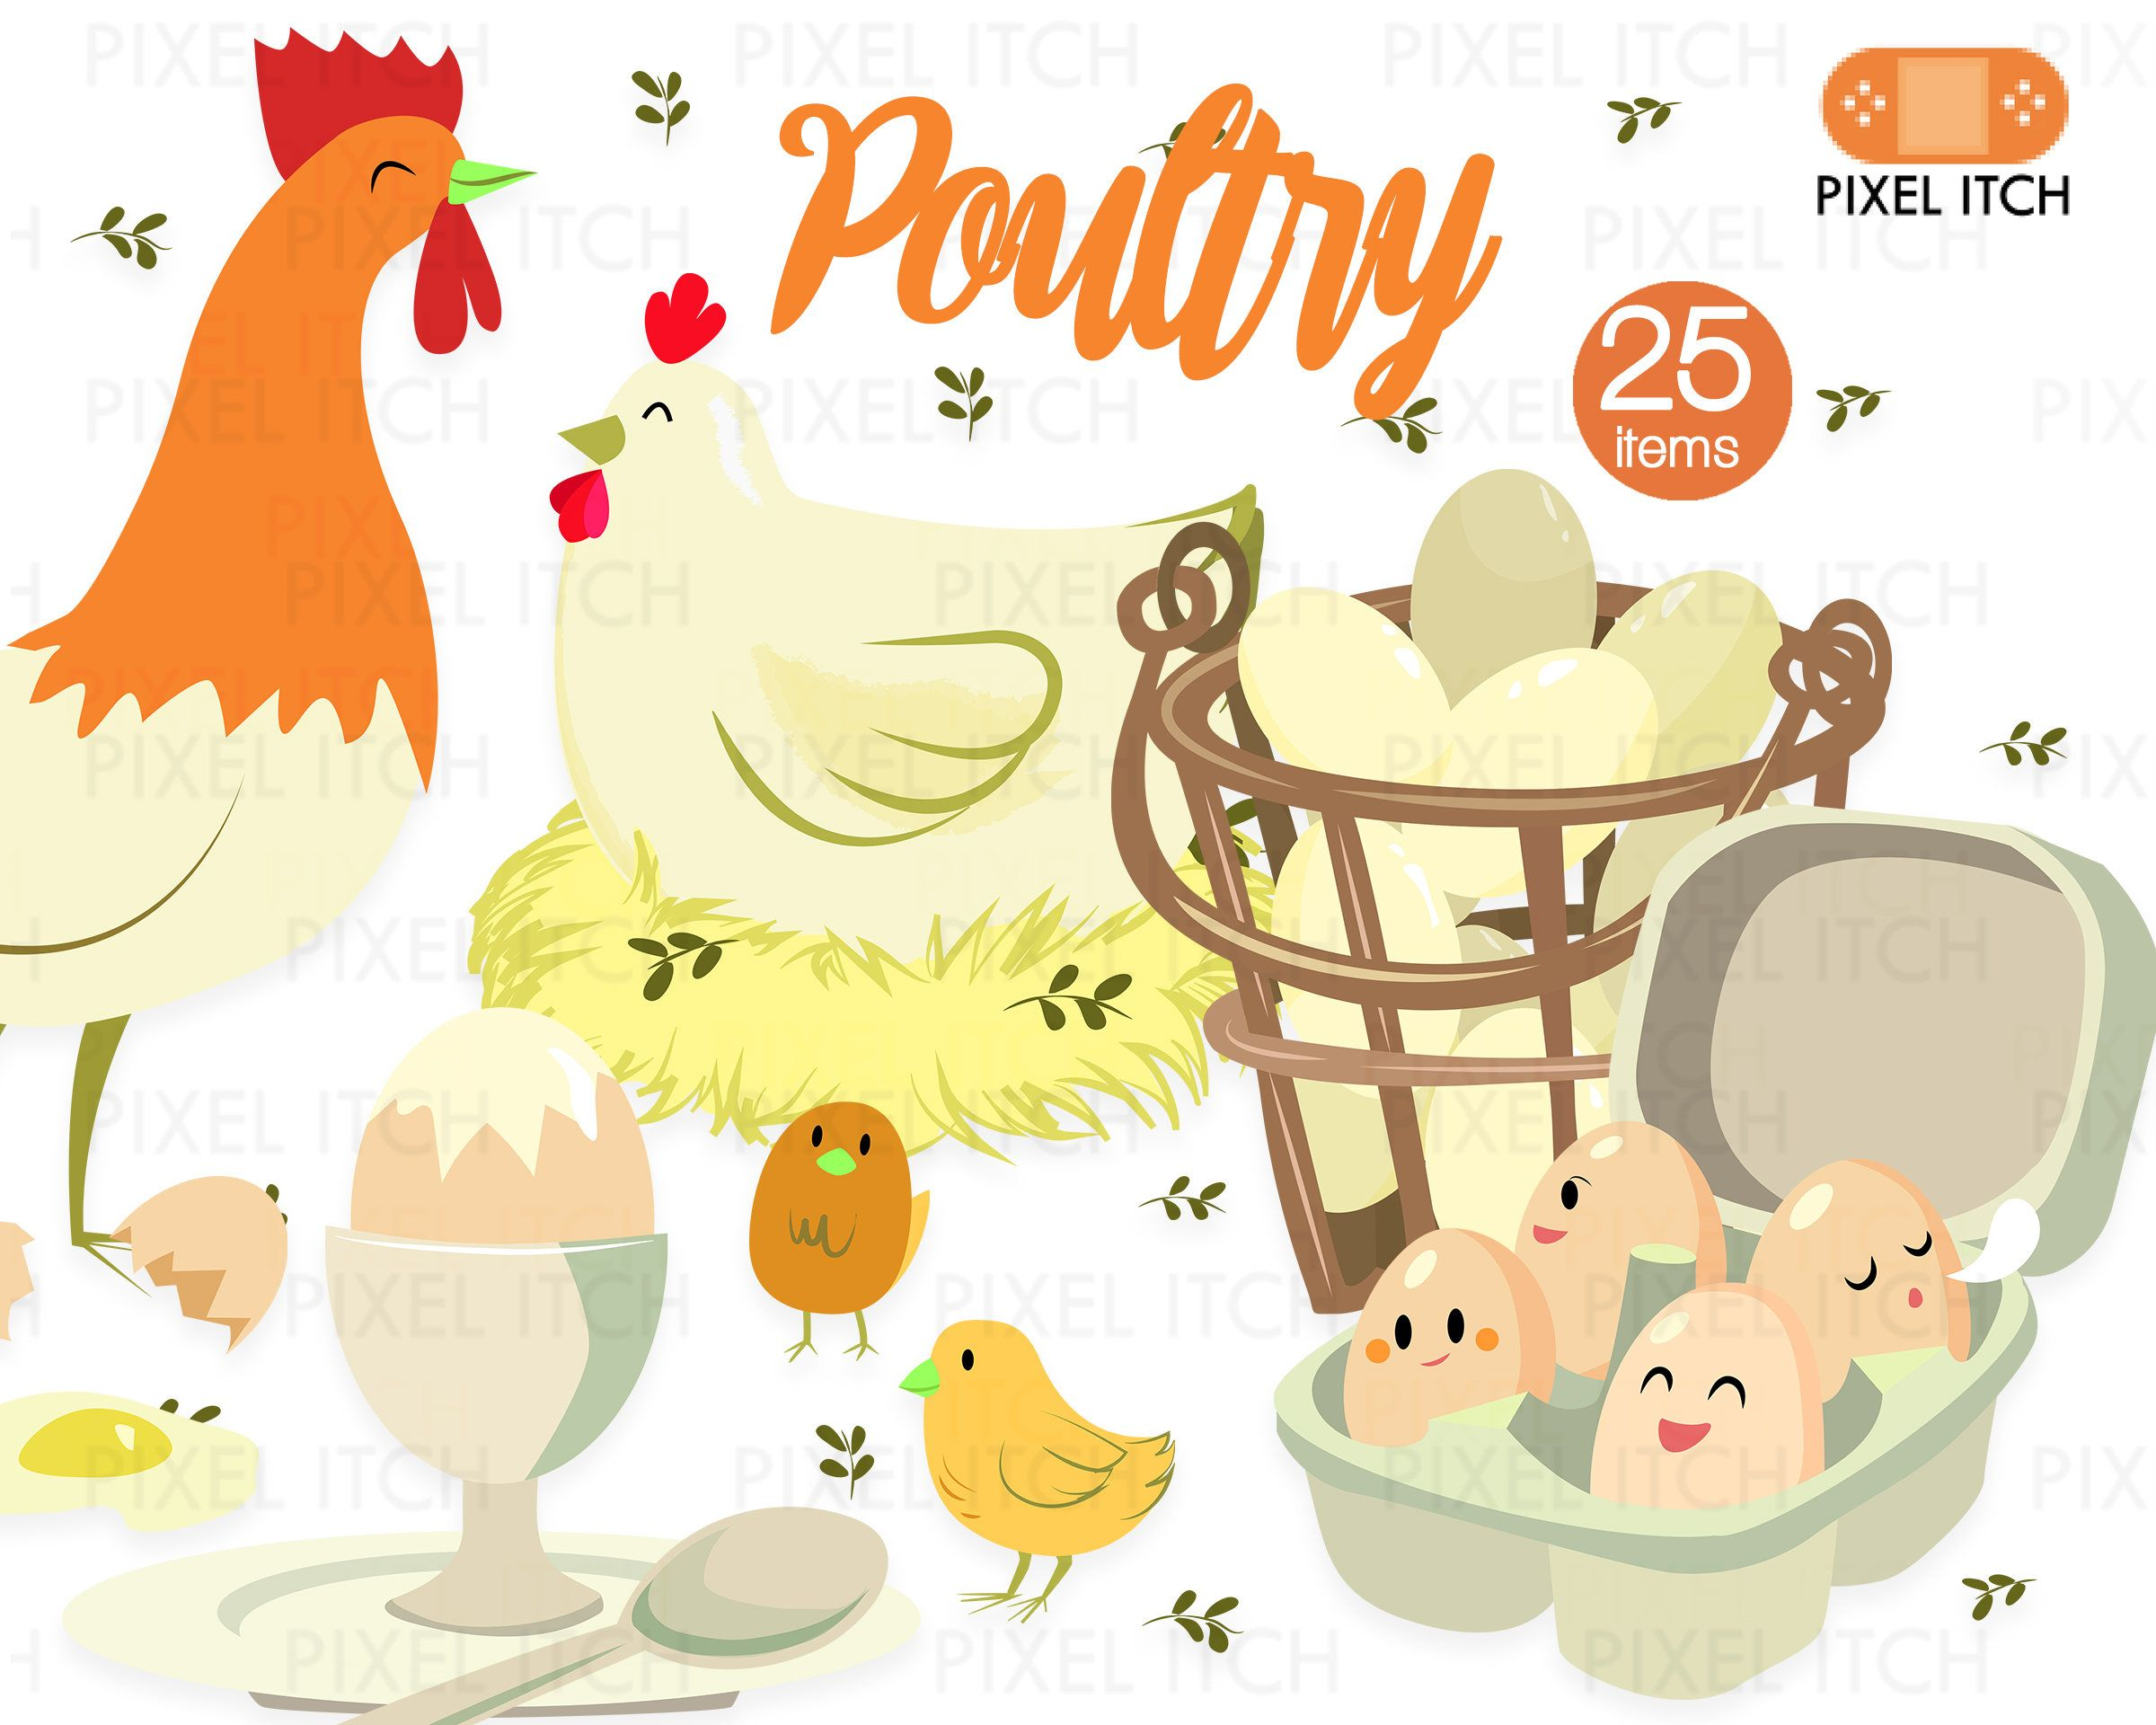 Chicken pultry pictures clipart svg black and white download Poultry Illustration - Farm Clipart, Farm Produce, Chicken Clipart ... svg black and white download